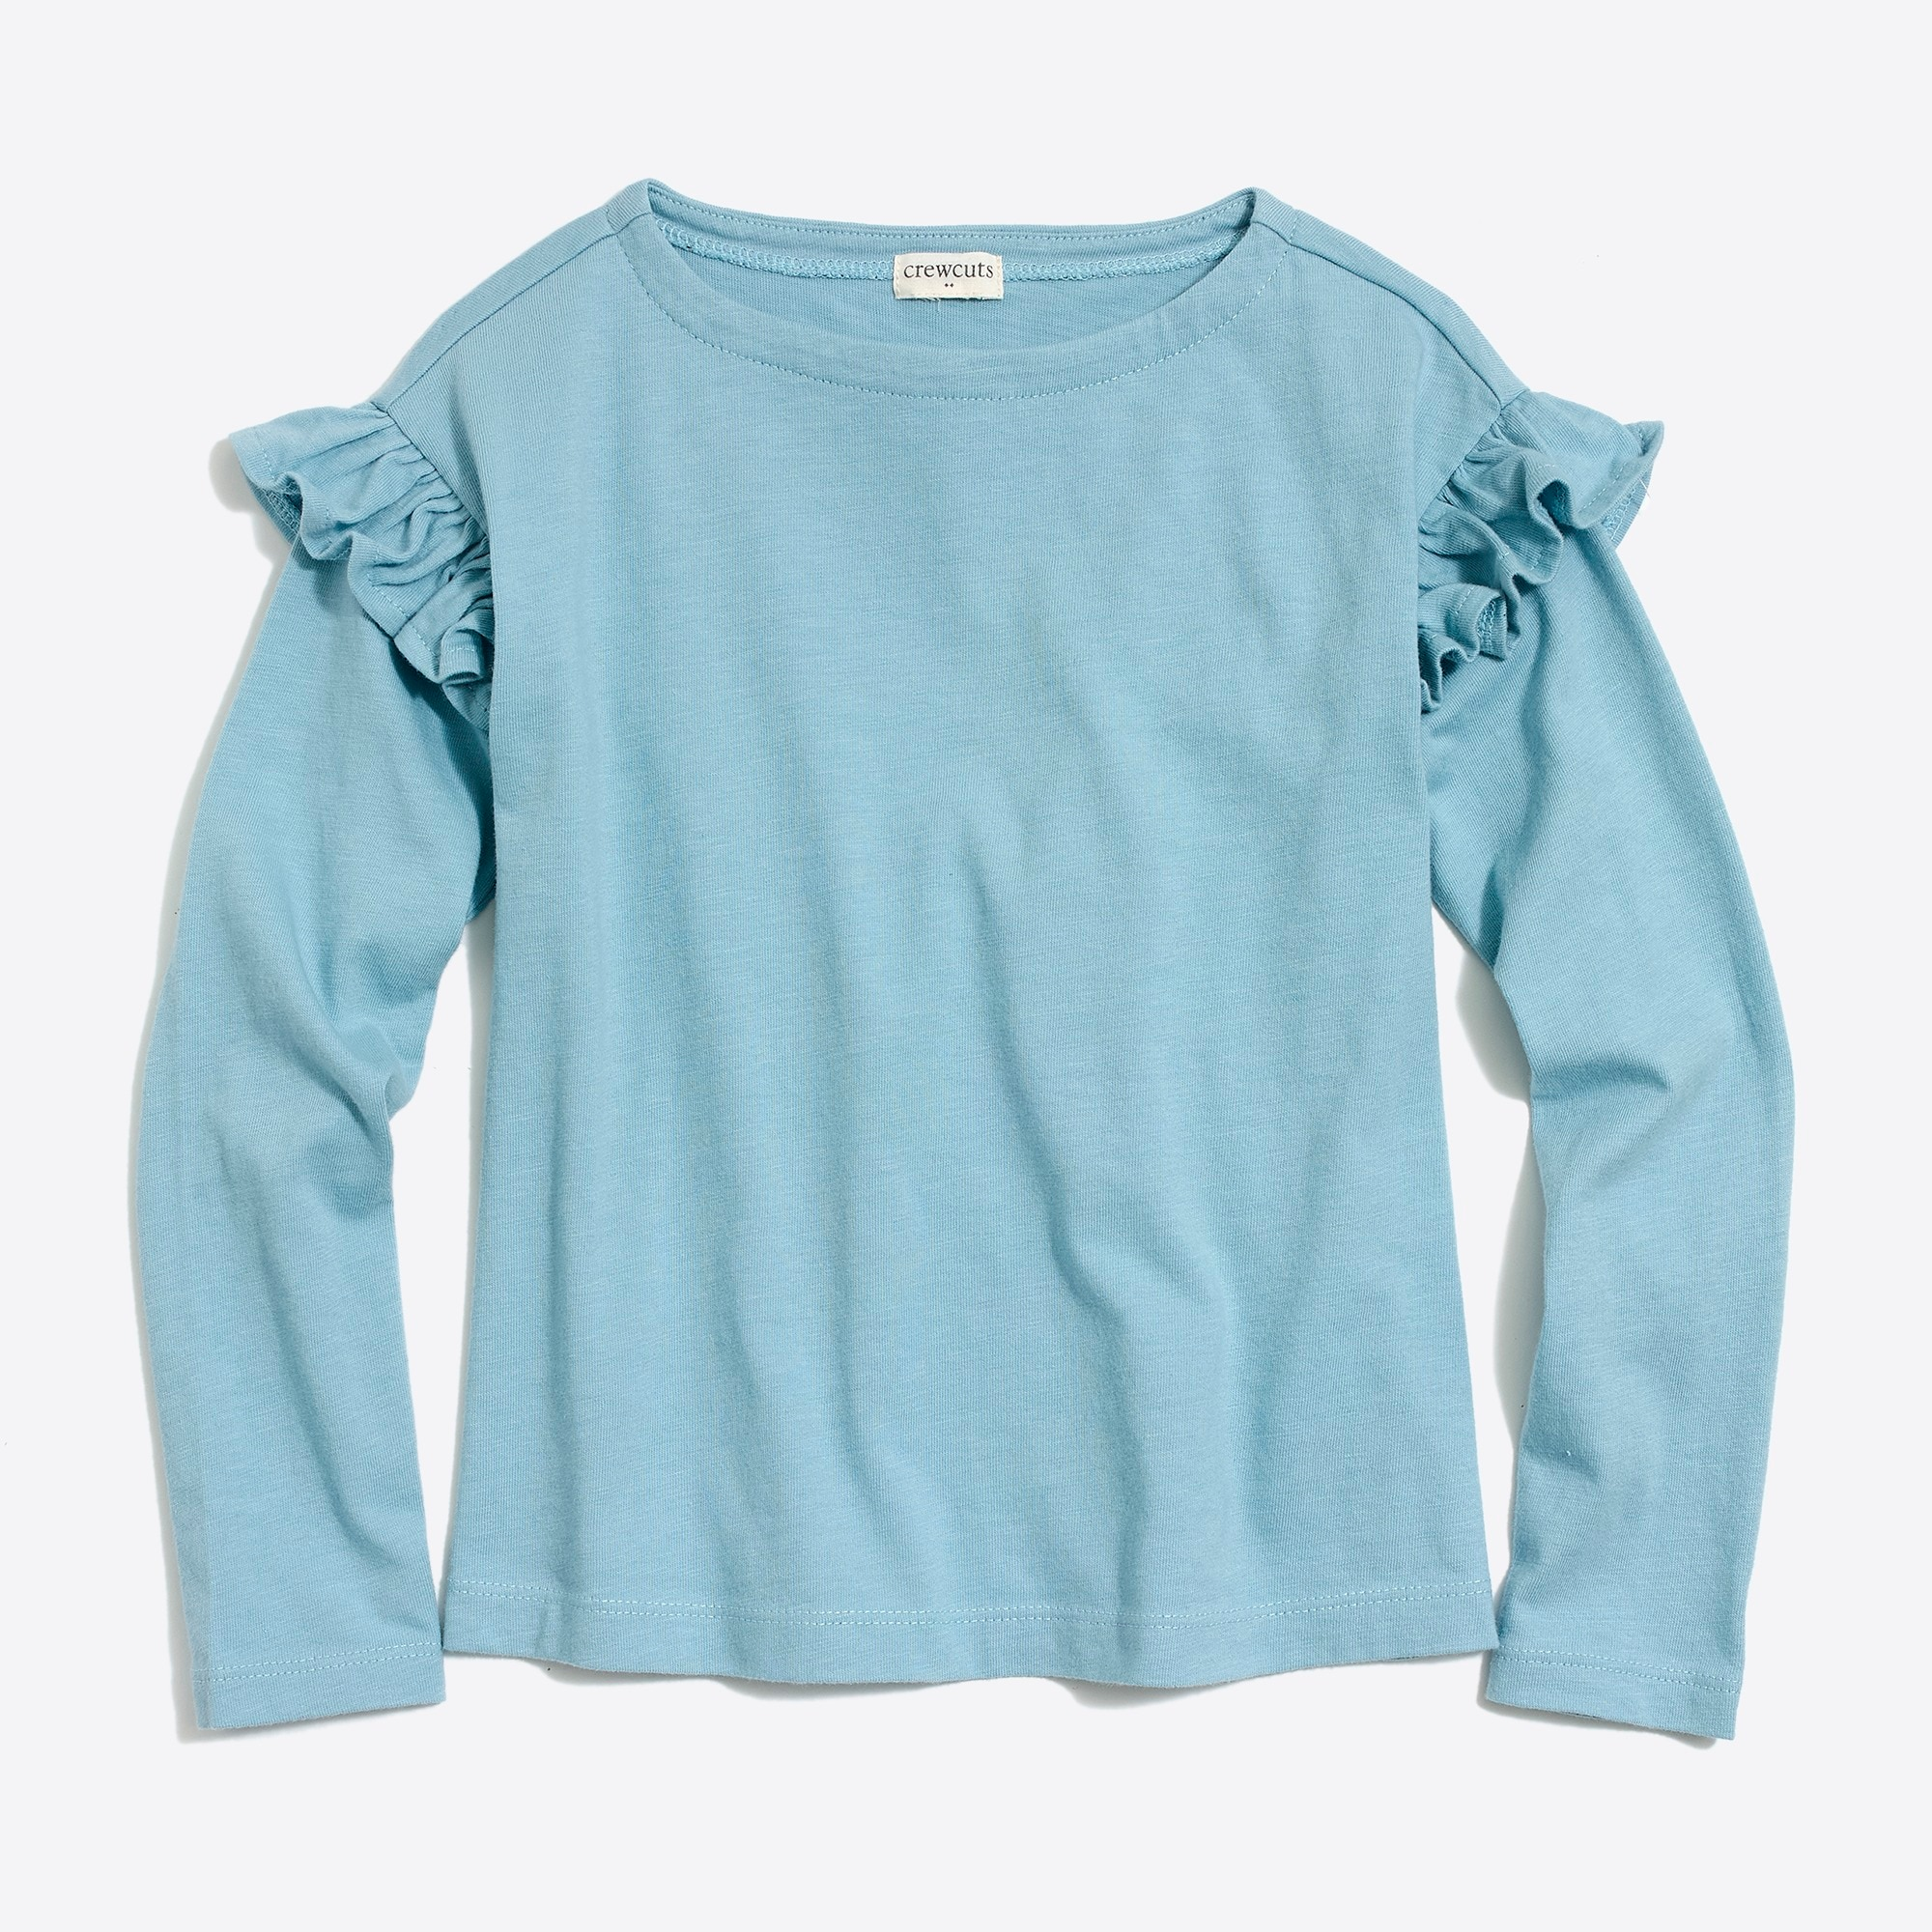 Girls' long-sleeve ruffle top